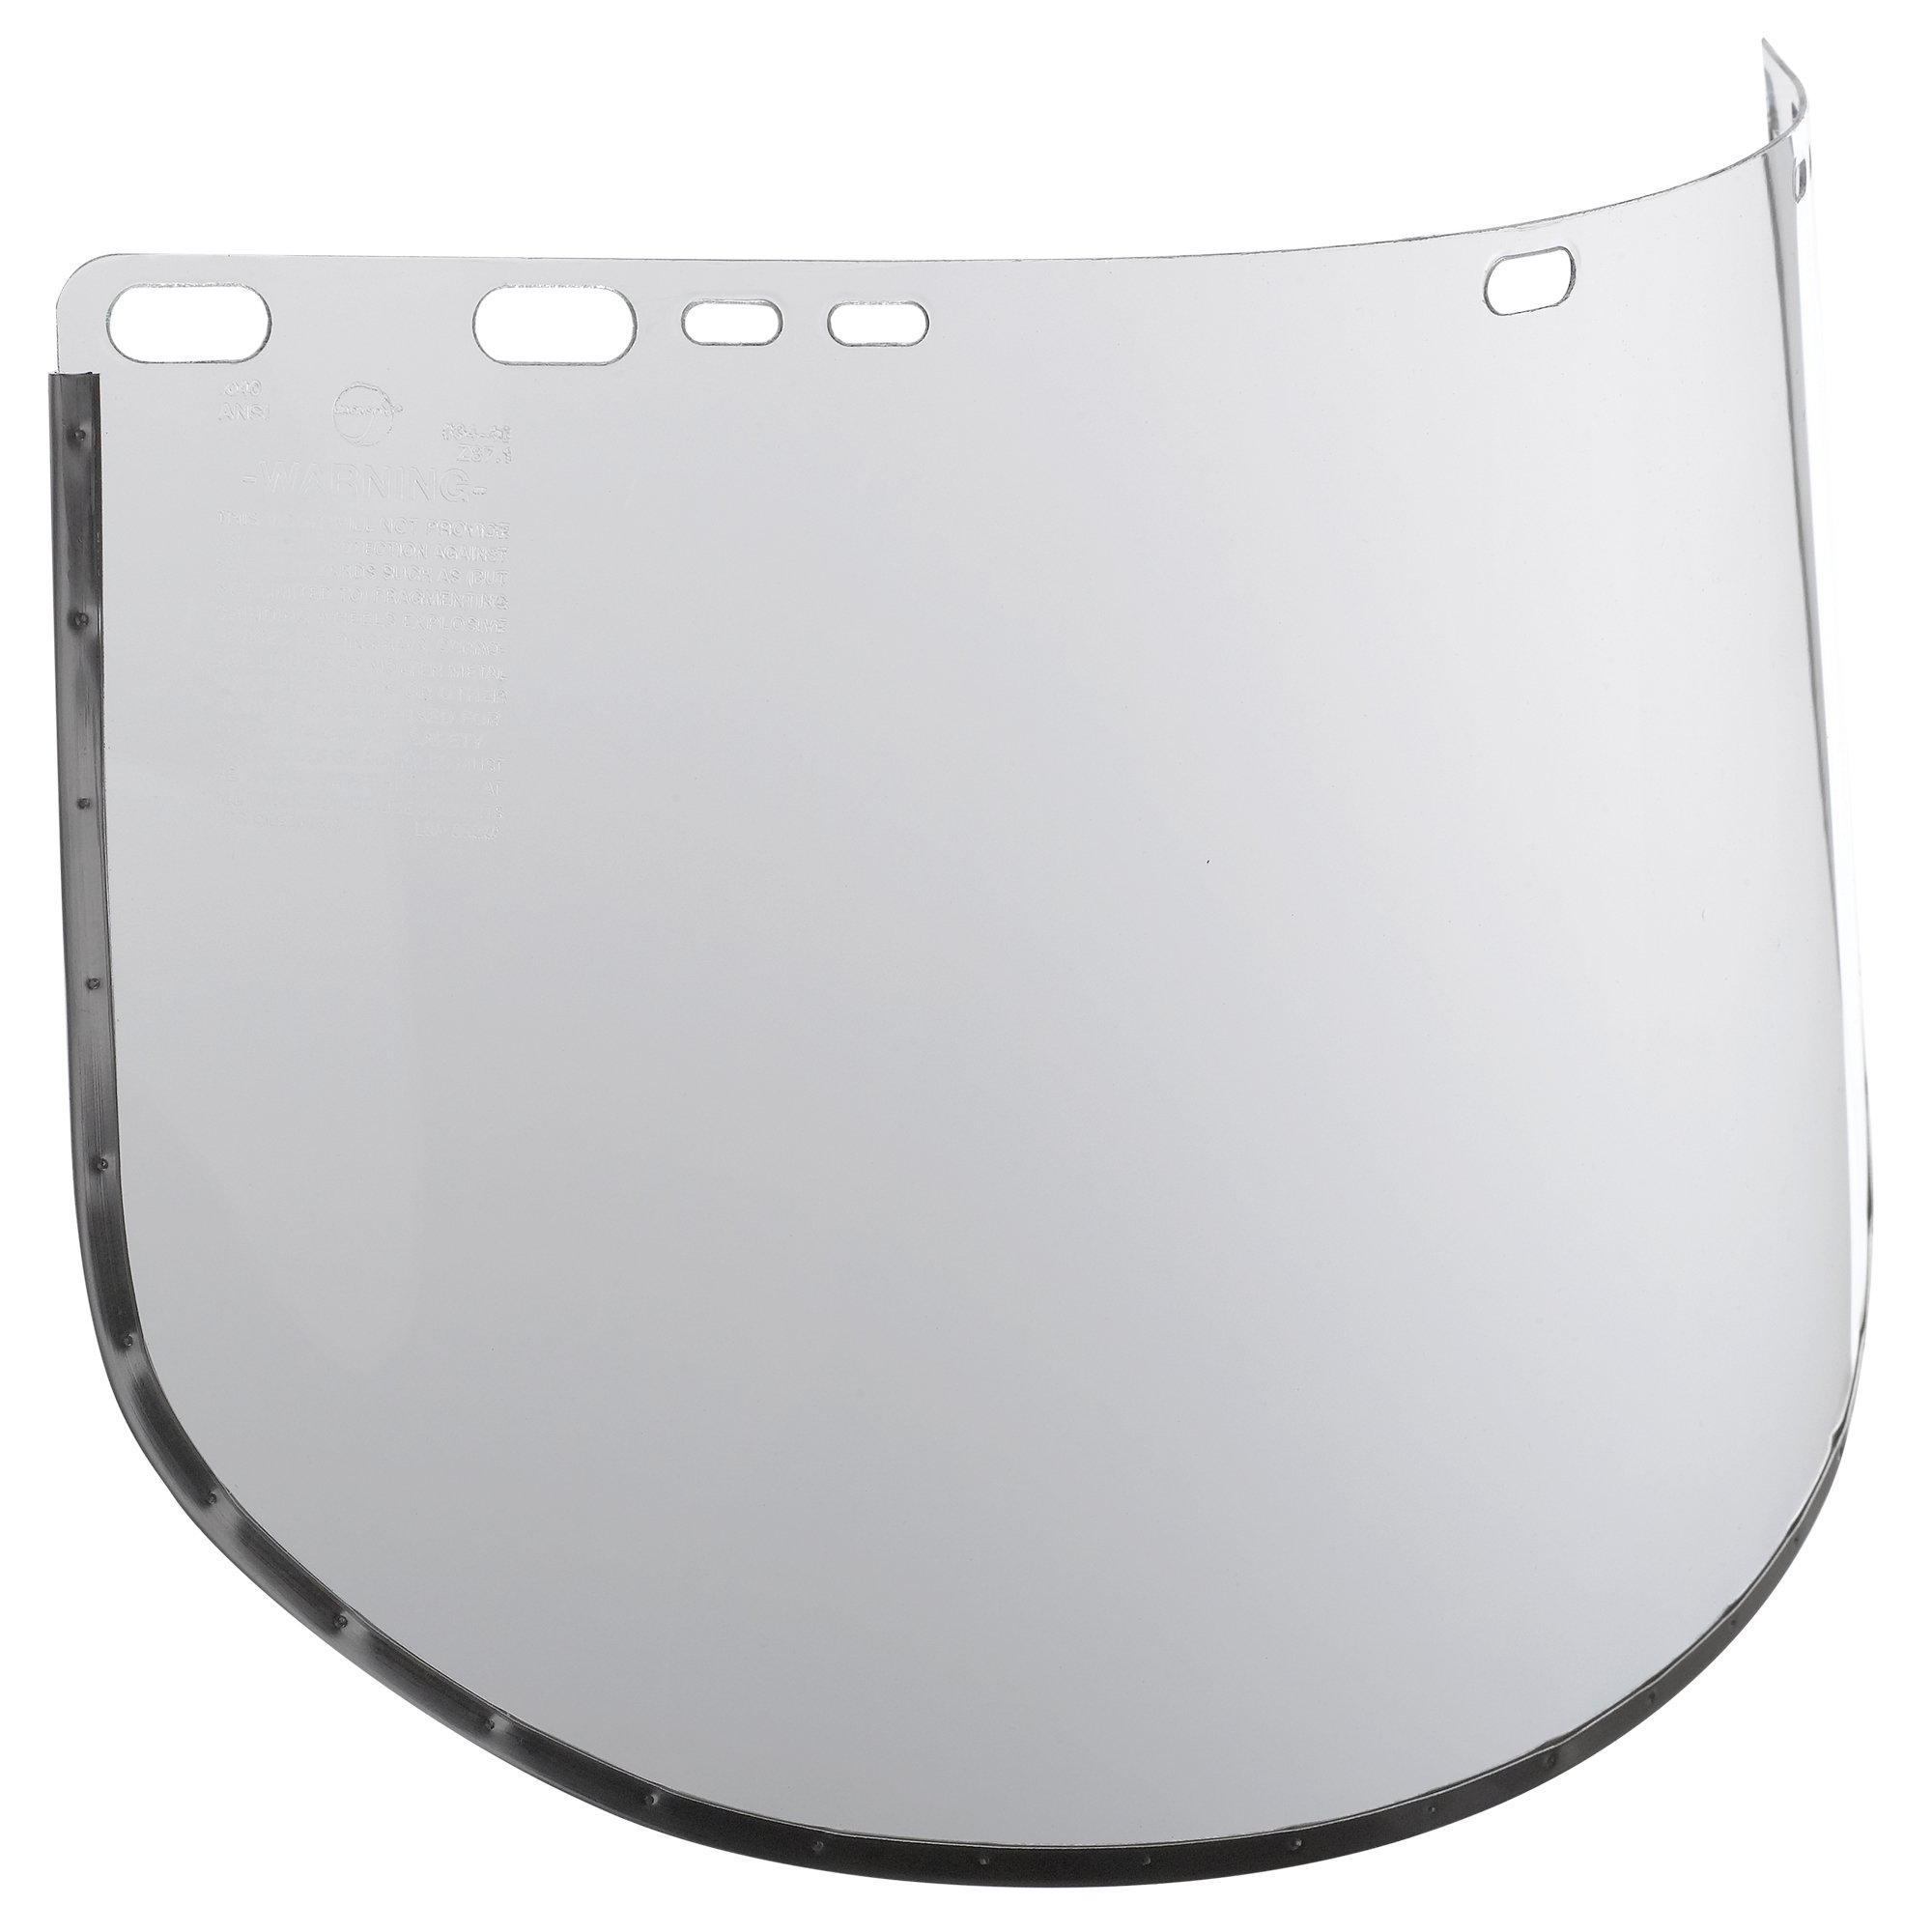 "Jackson Safety F30 Acetate Face Shield (29079), 9"" x 15.5"" Clear, Reusable Face Protection, 24 Shields/Case"